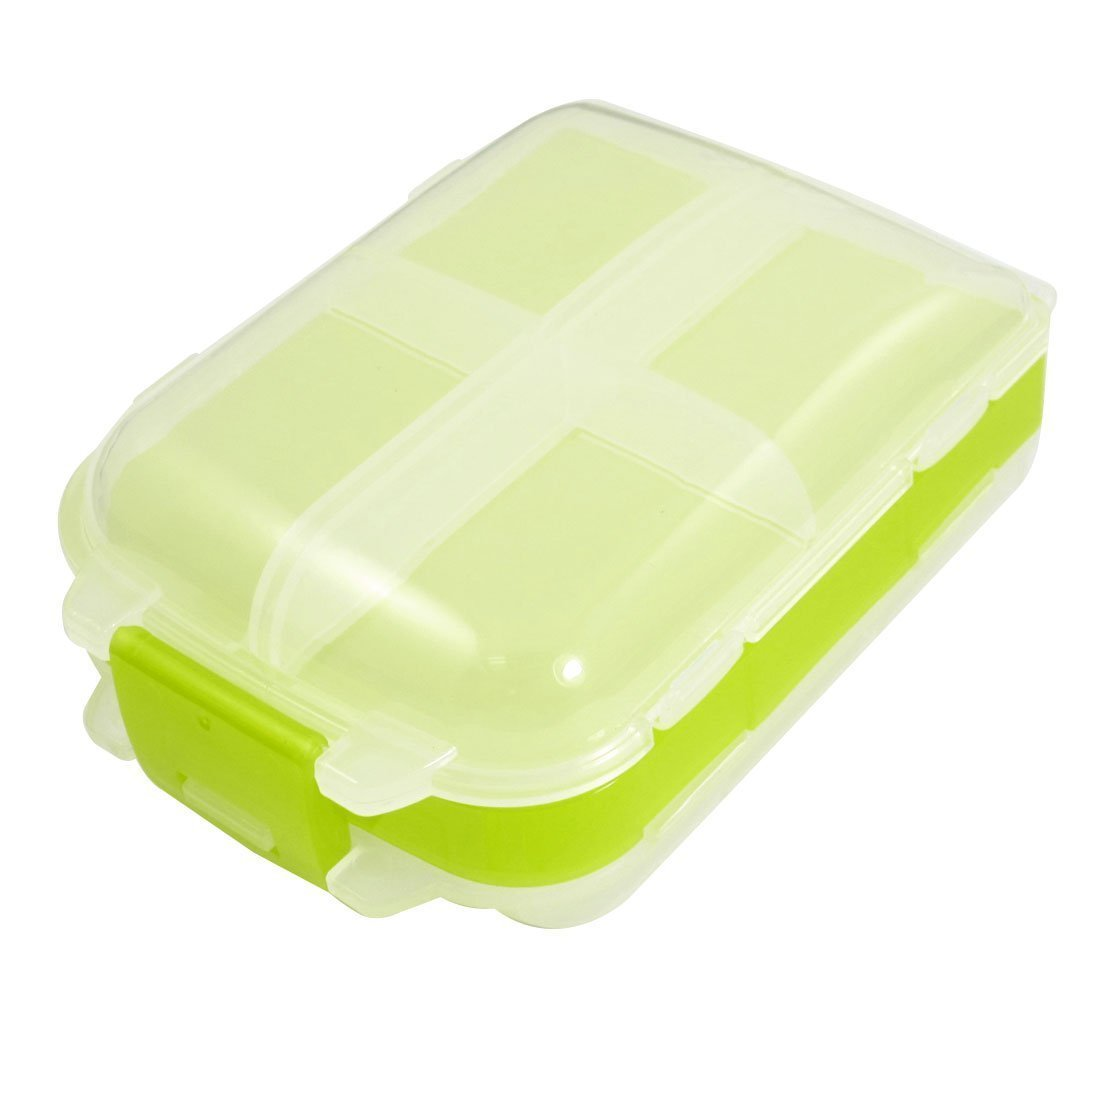 uxcell Plastic 8 Compartments Jewelry Electronic Components Case Clear White Green